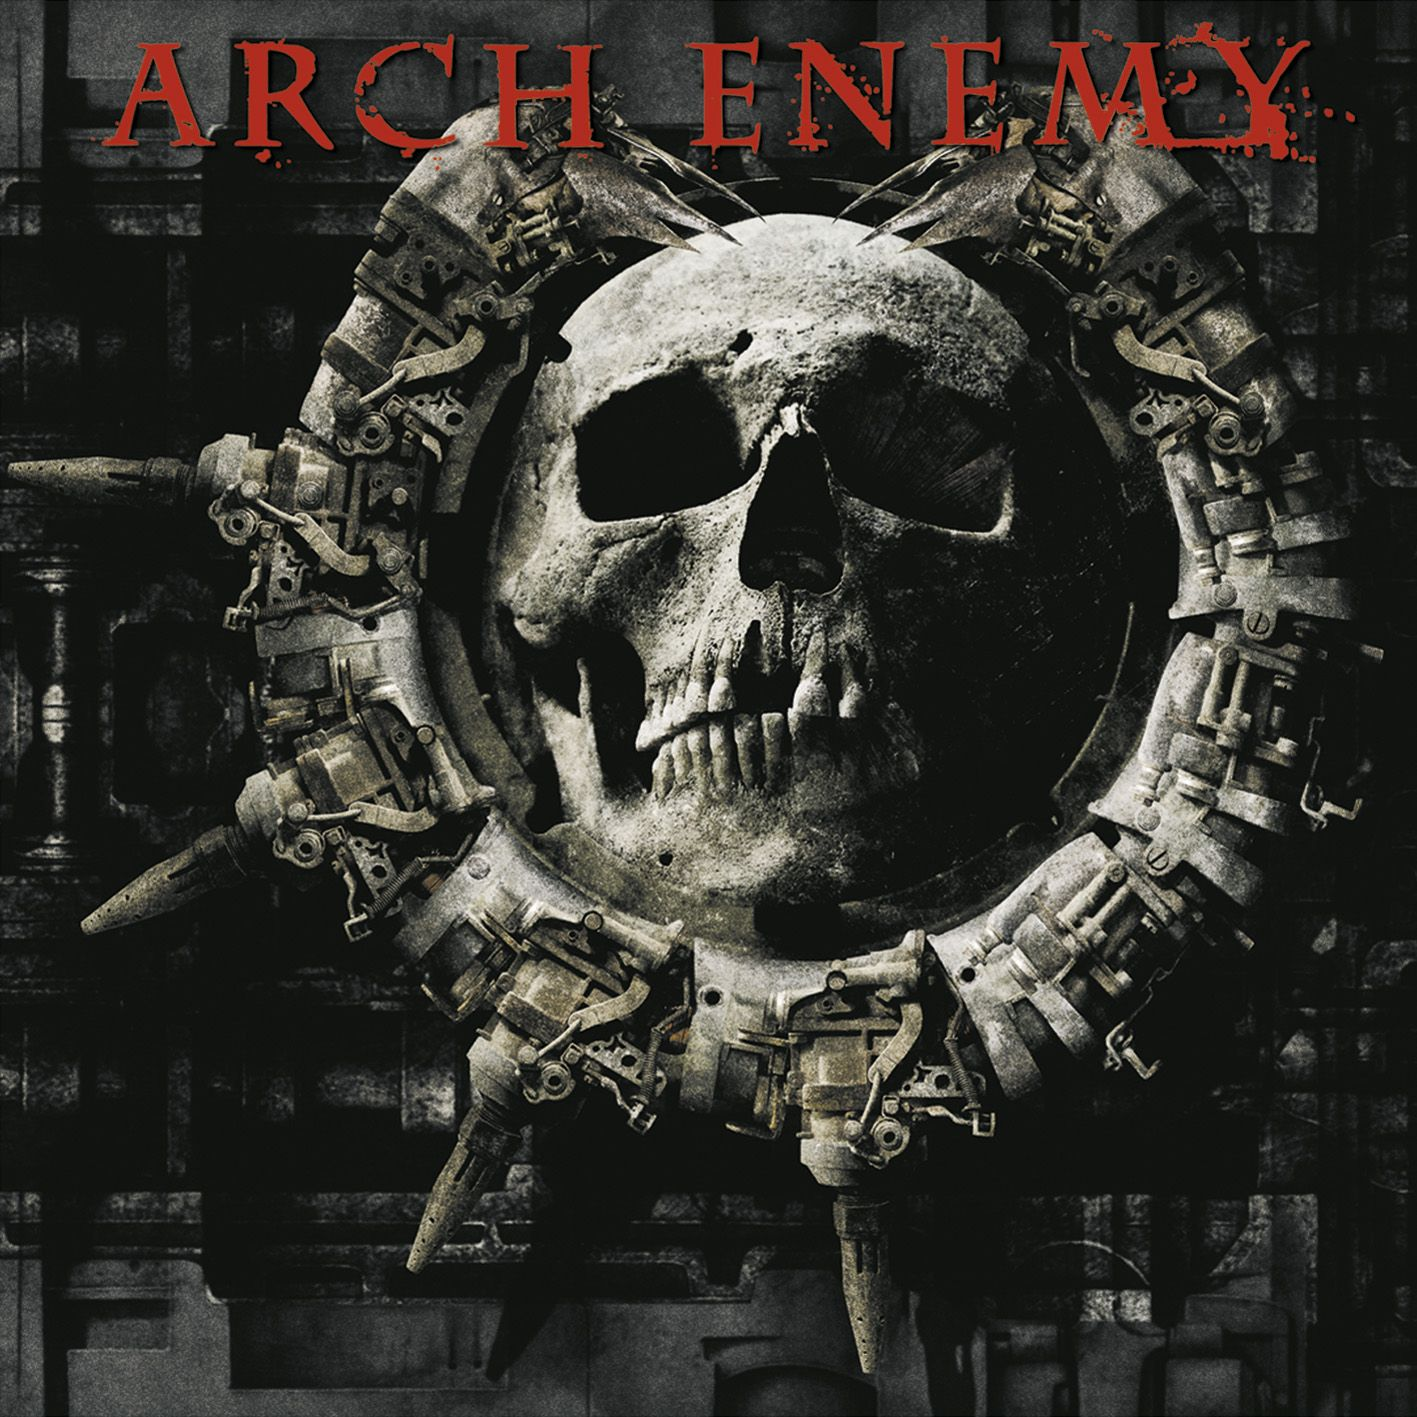 Arch Enemy Doomsday Machine 2005 Portadas De Discos Bandas